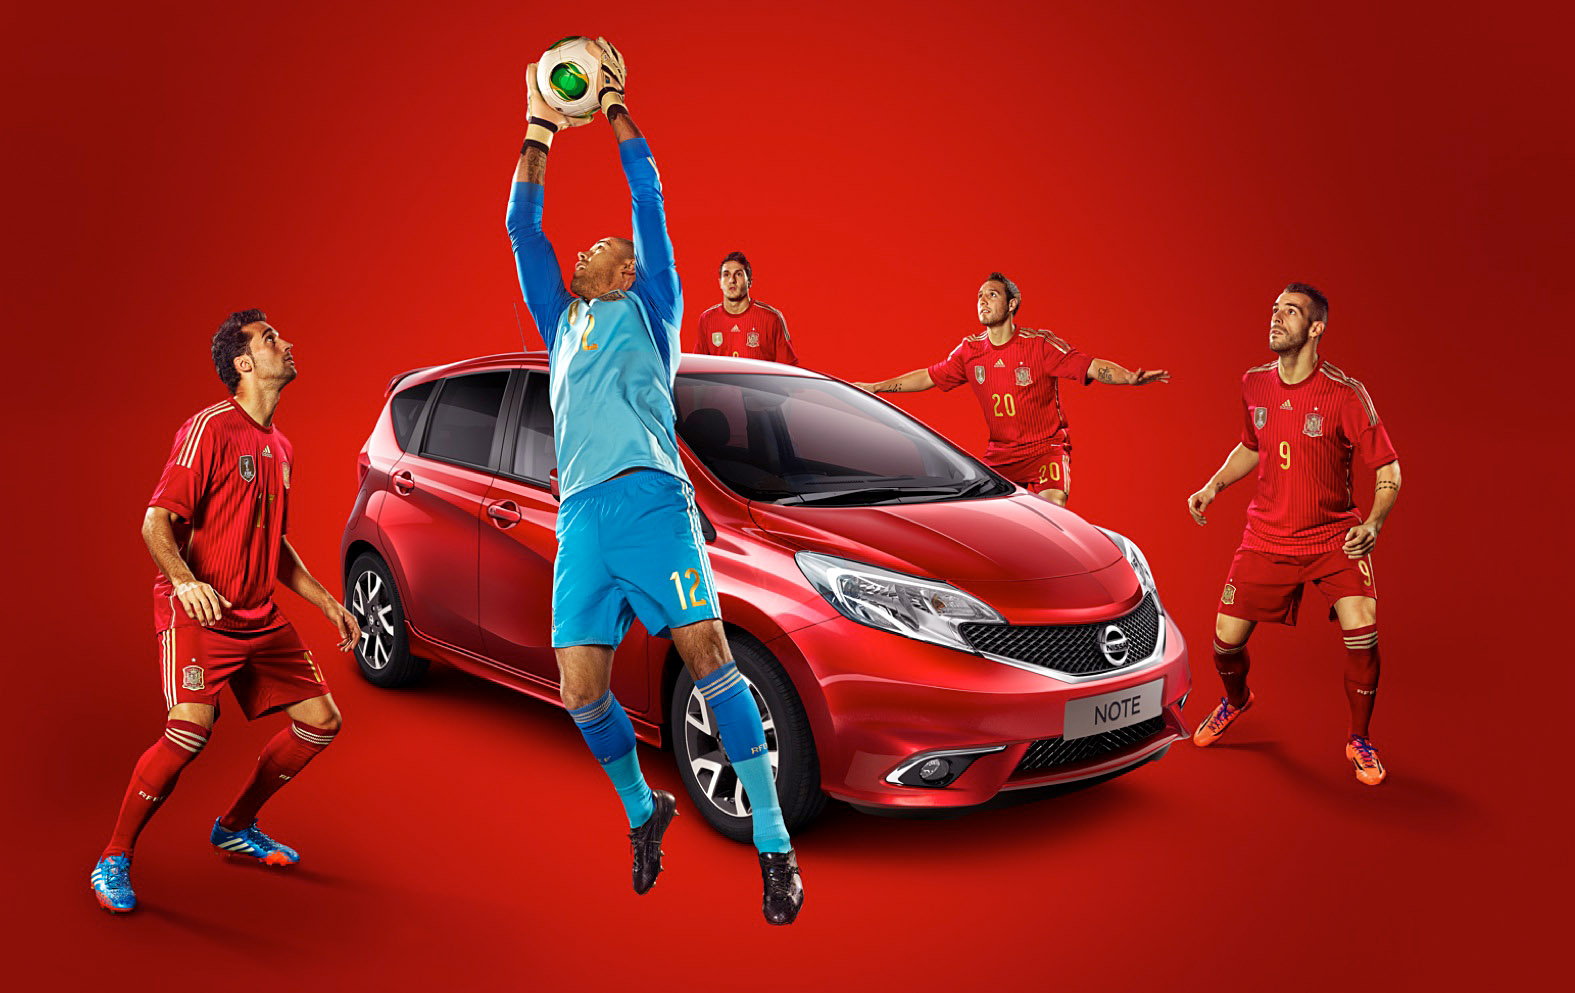 NISSAN NOTE - SPANISH NATIONAL TEAM